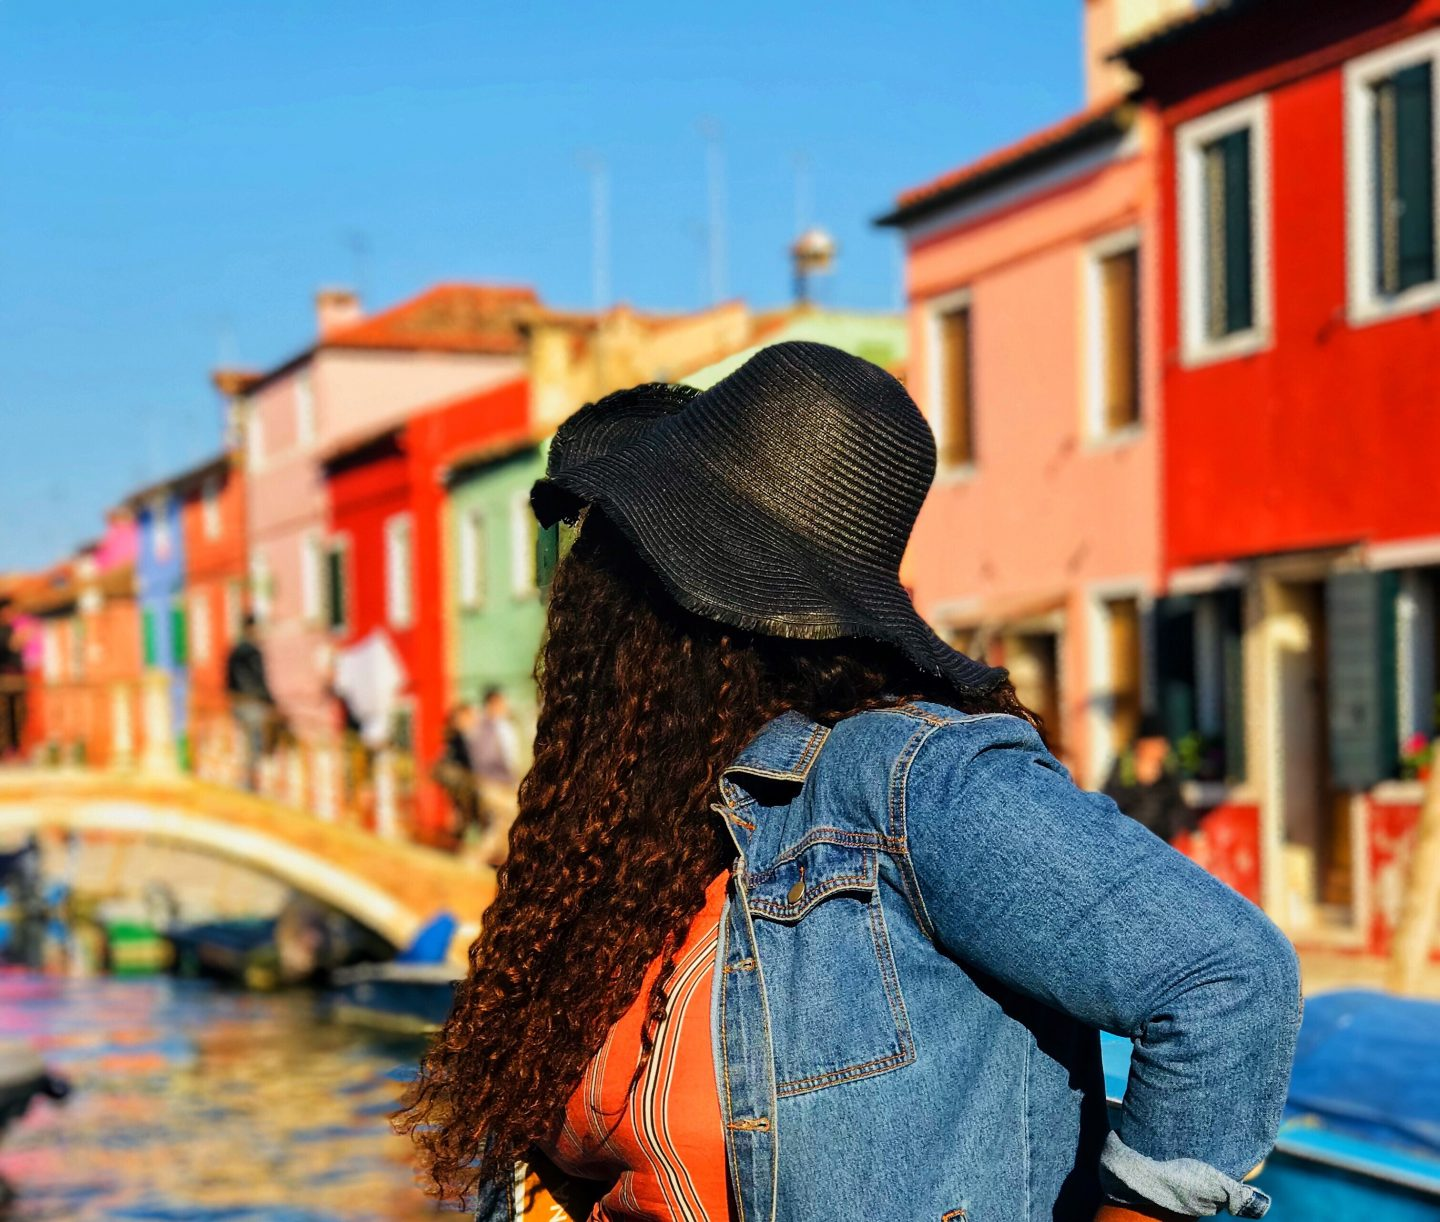 Italy Travel Diaries: 5 Things To Do In Venice